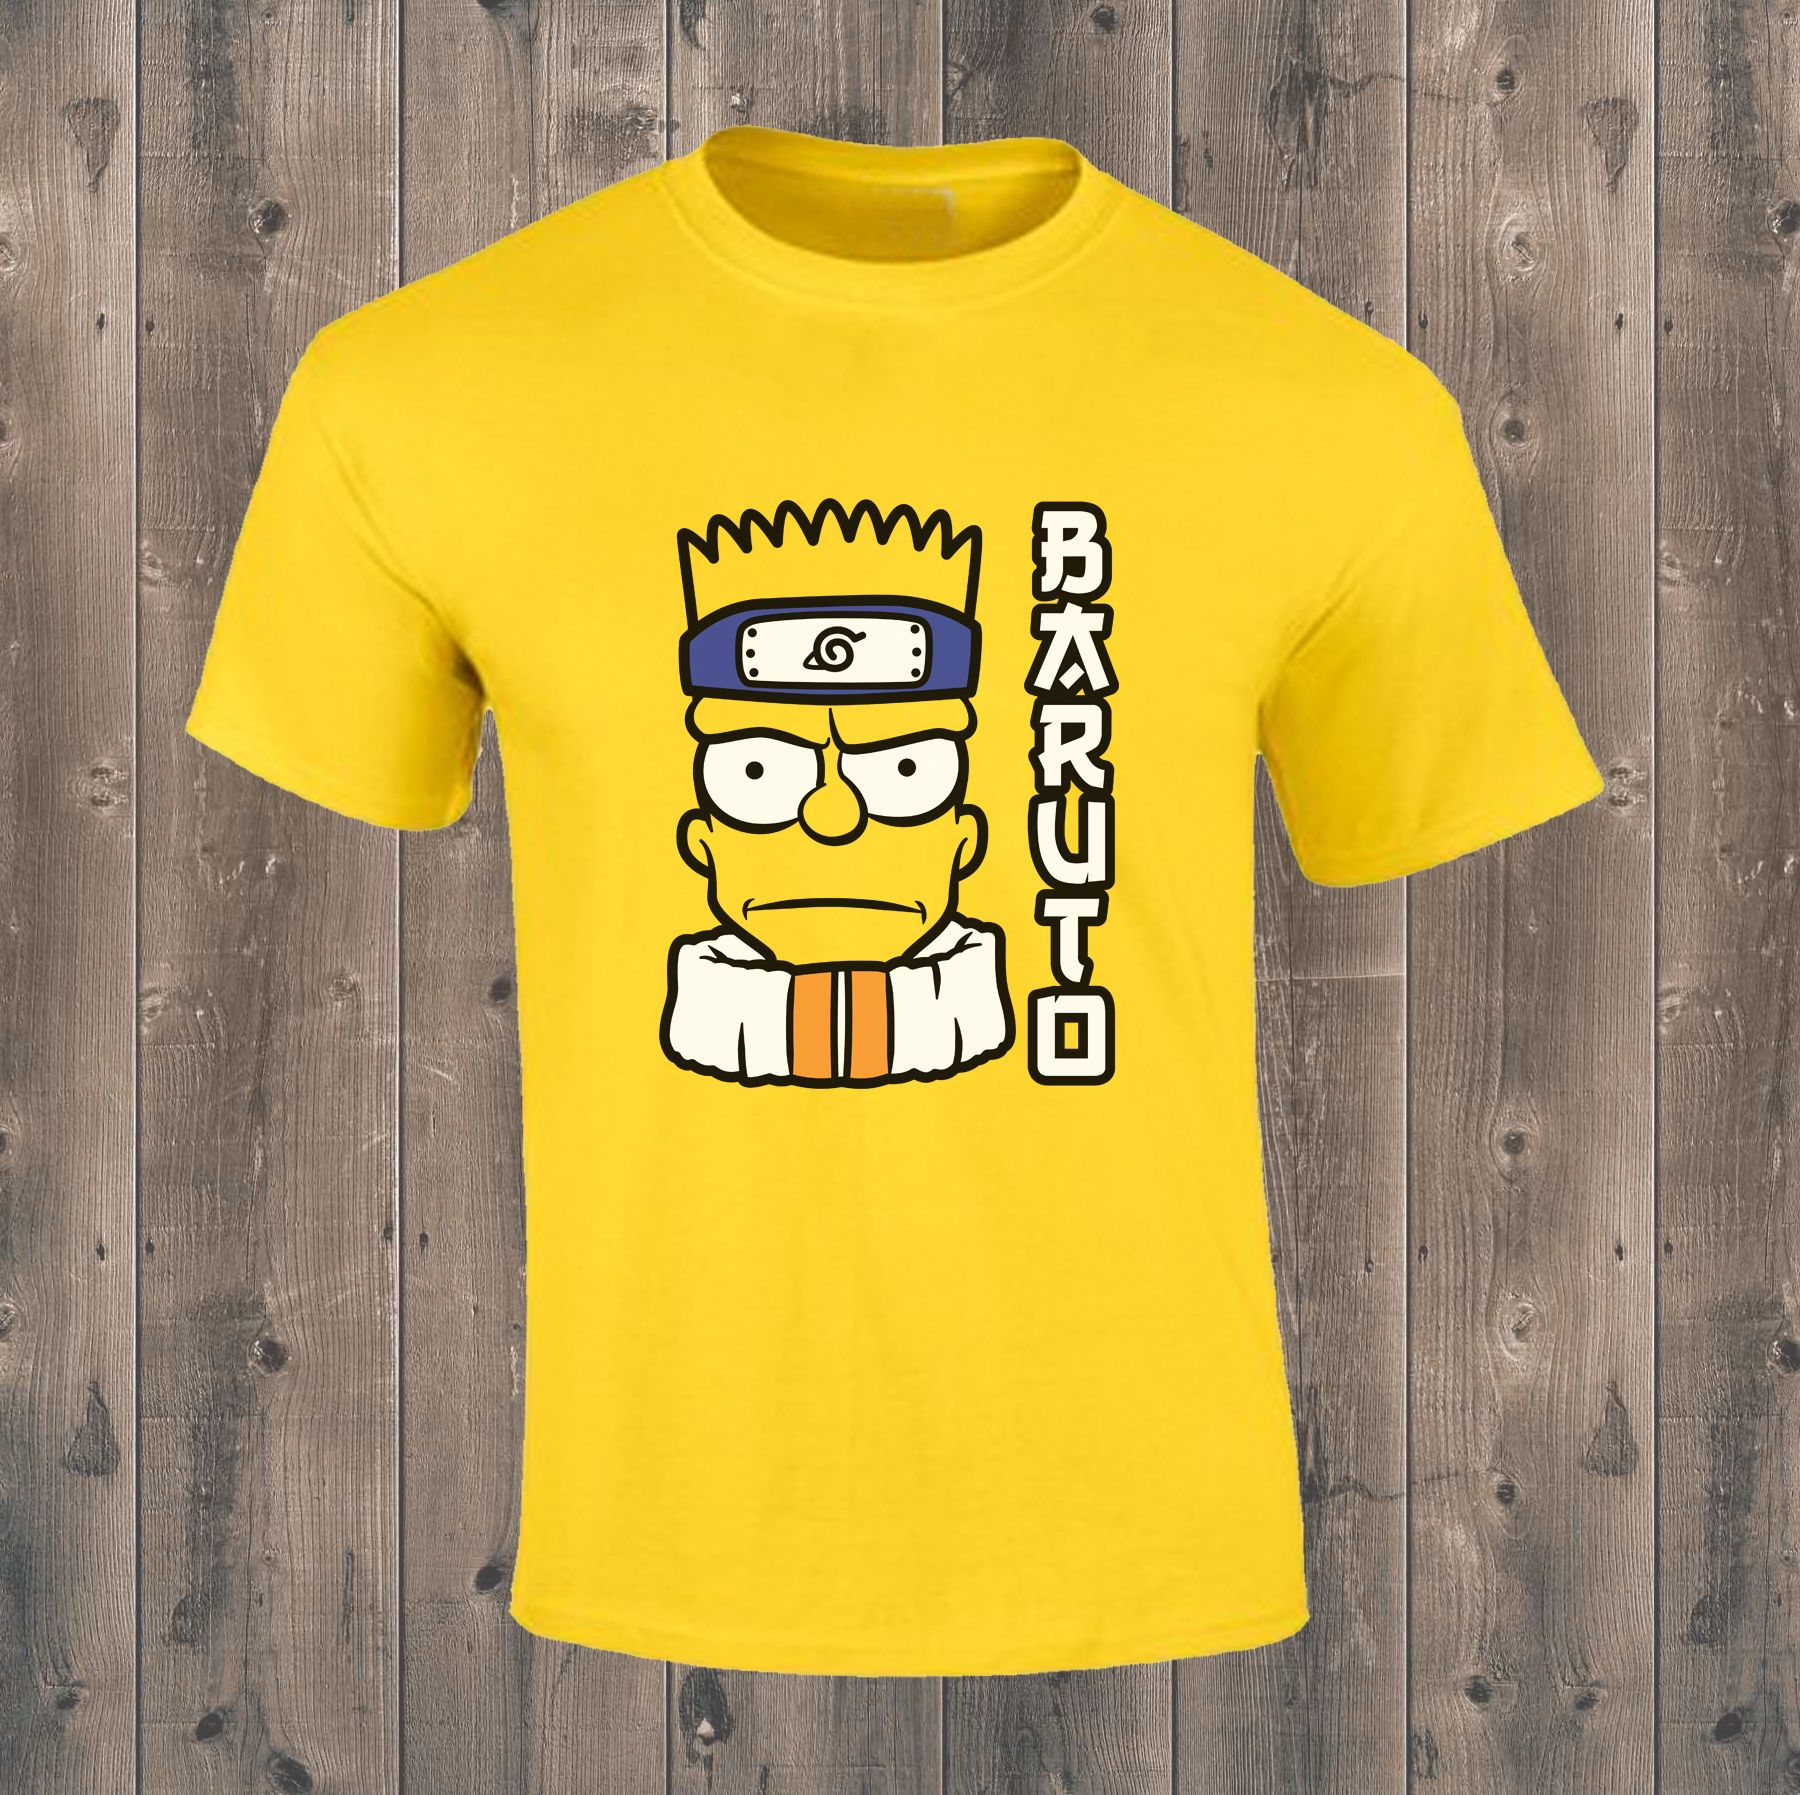 16af2046b Add some colour and fun to your wardrobe with this playful Bart Simpson T- shirt